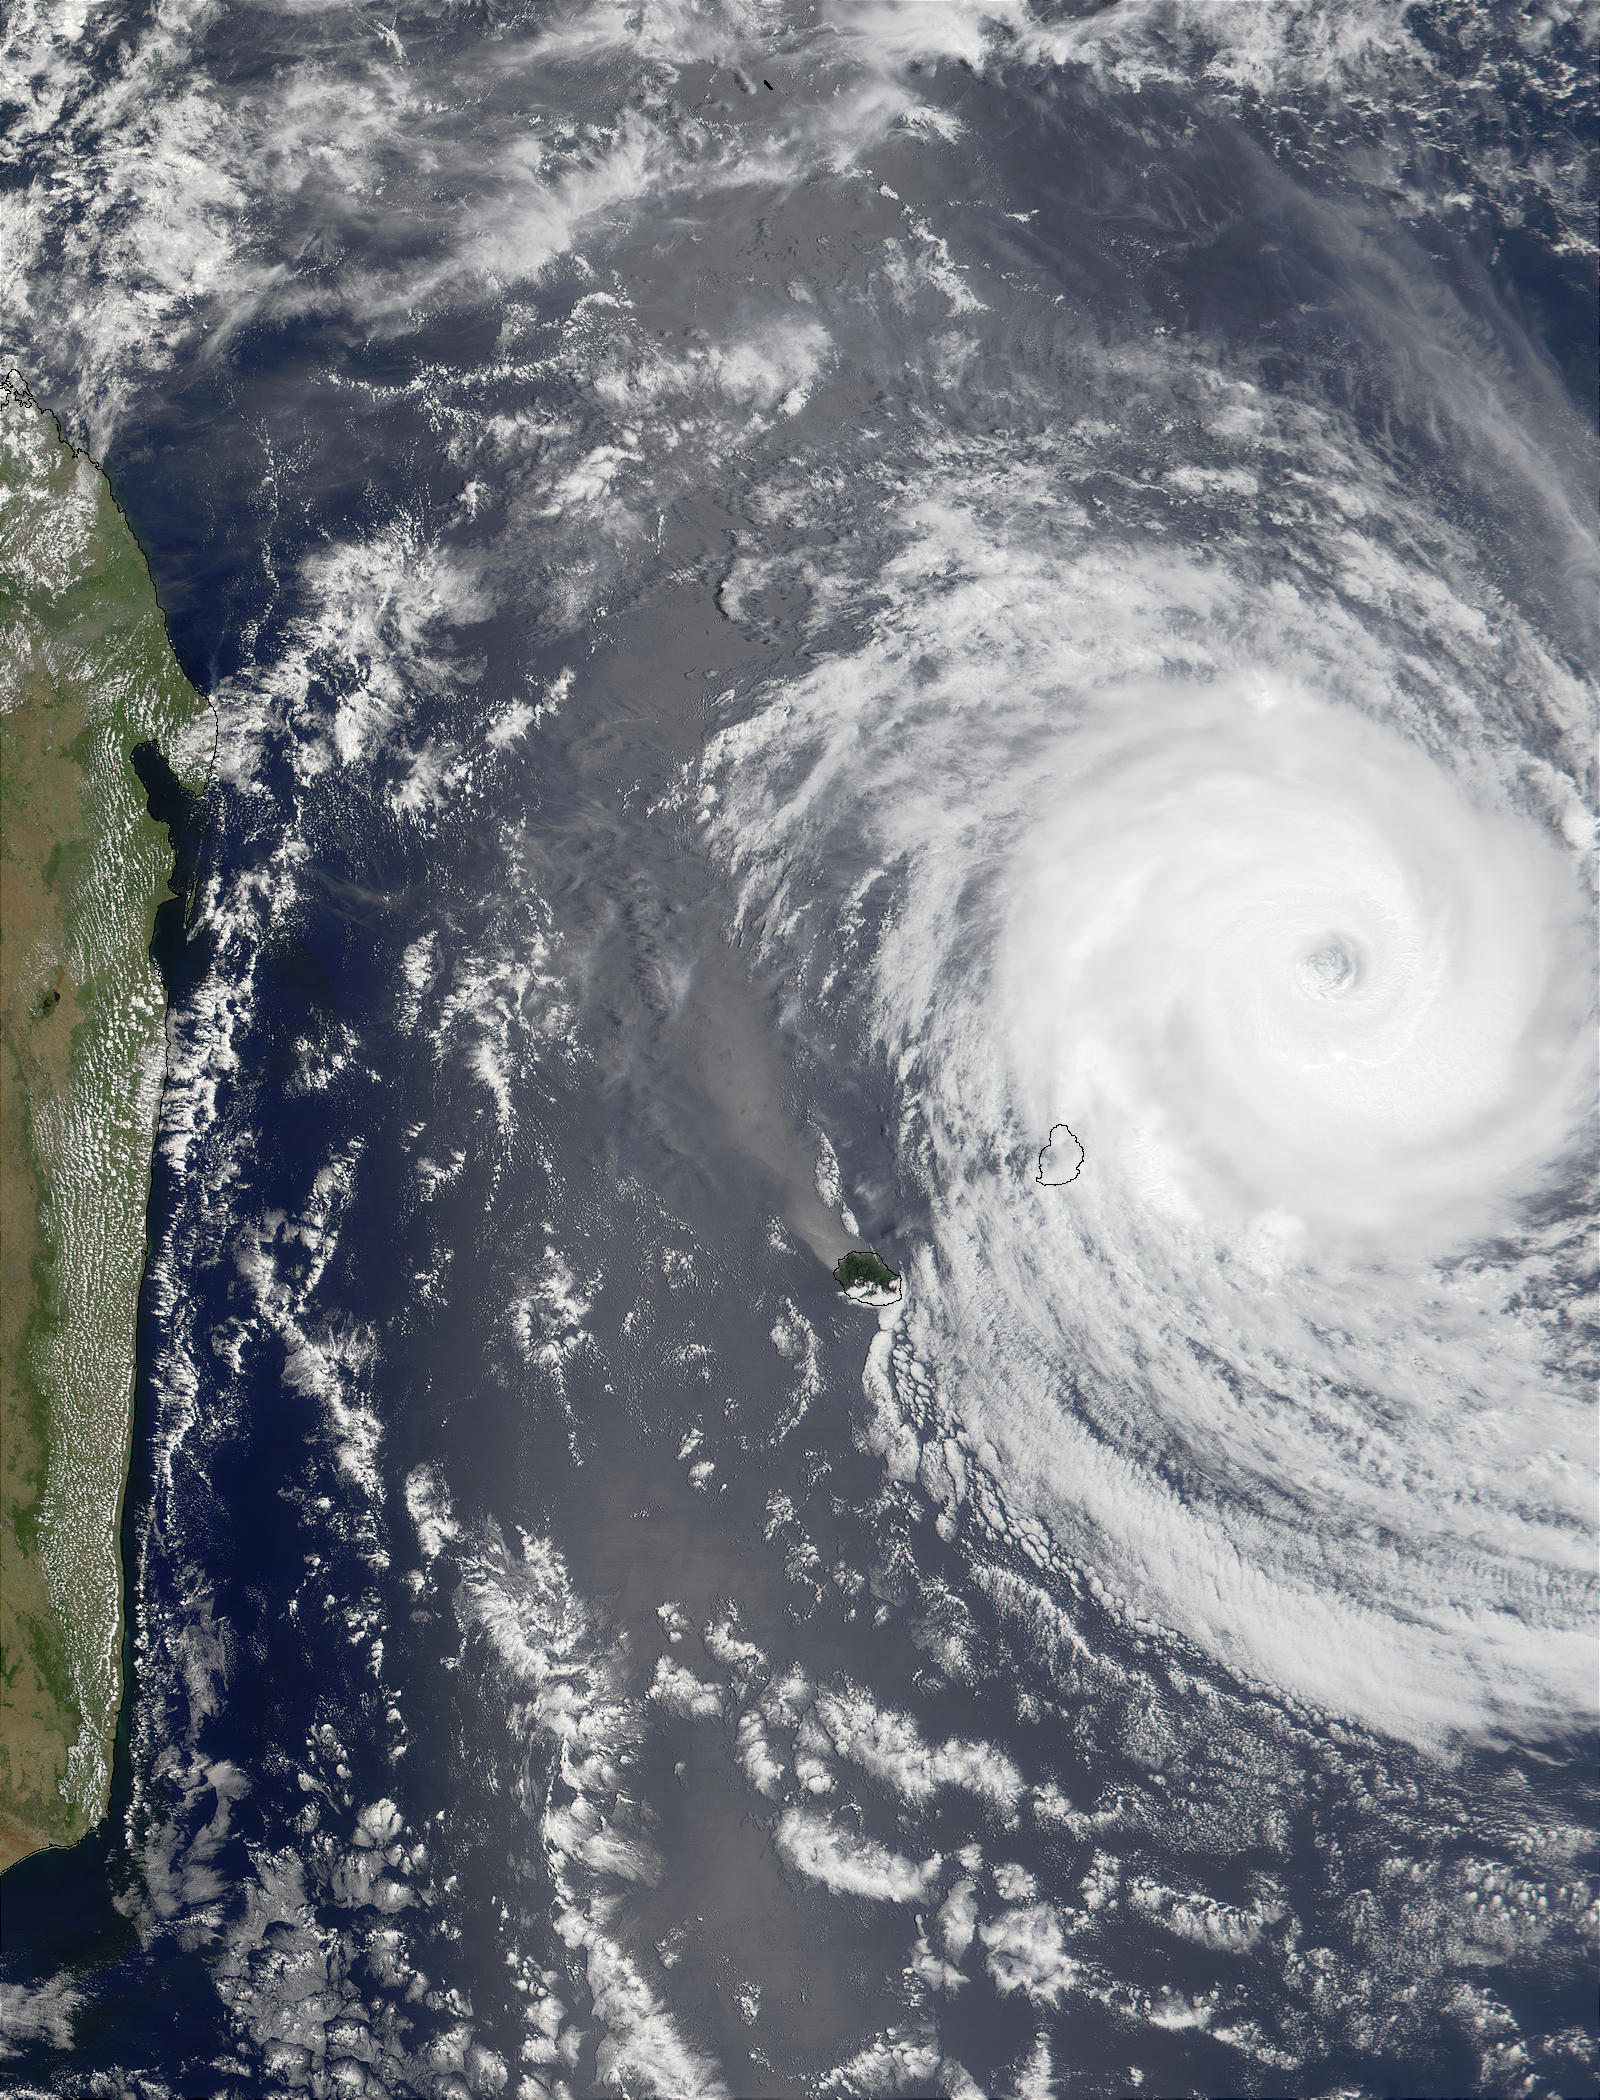 Tropical Cyclone Dina (10S) northeast of Mauritius and Reunion Islands, Indian Ocean - related image preview